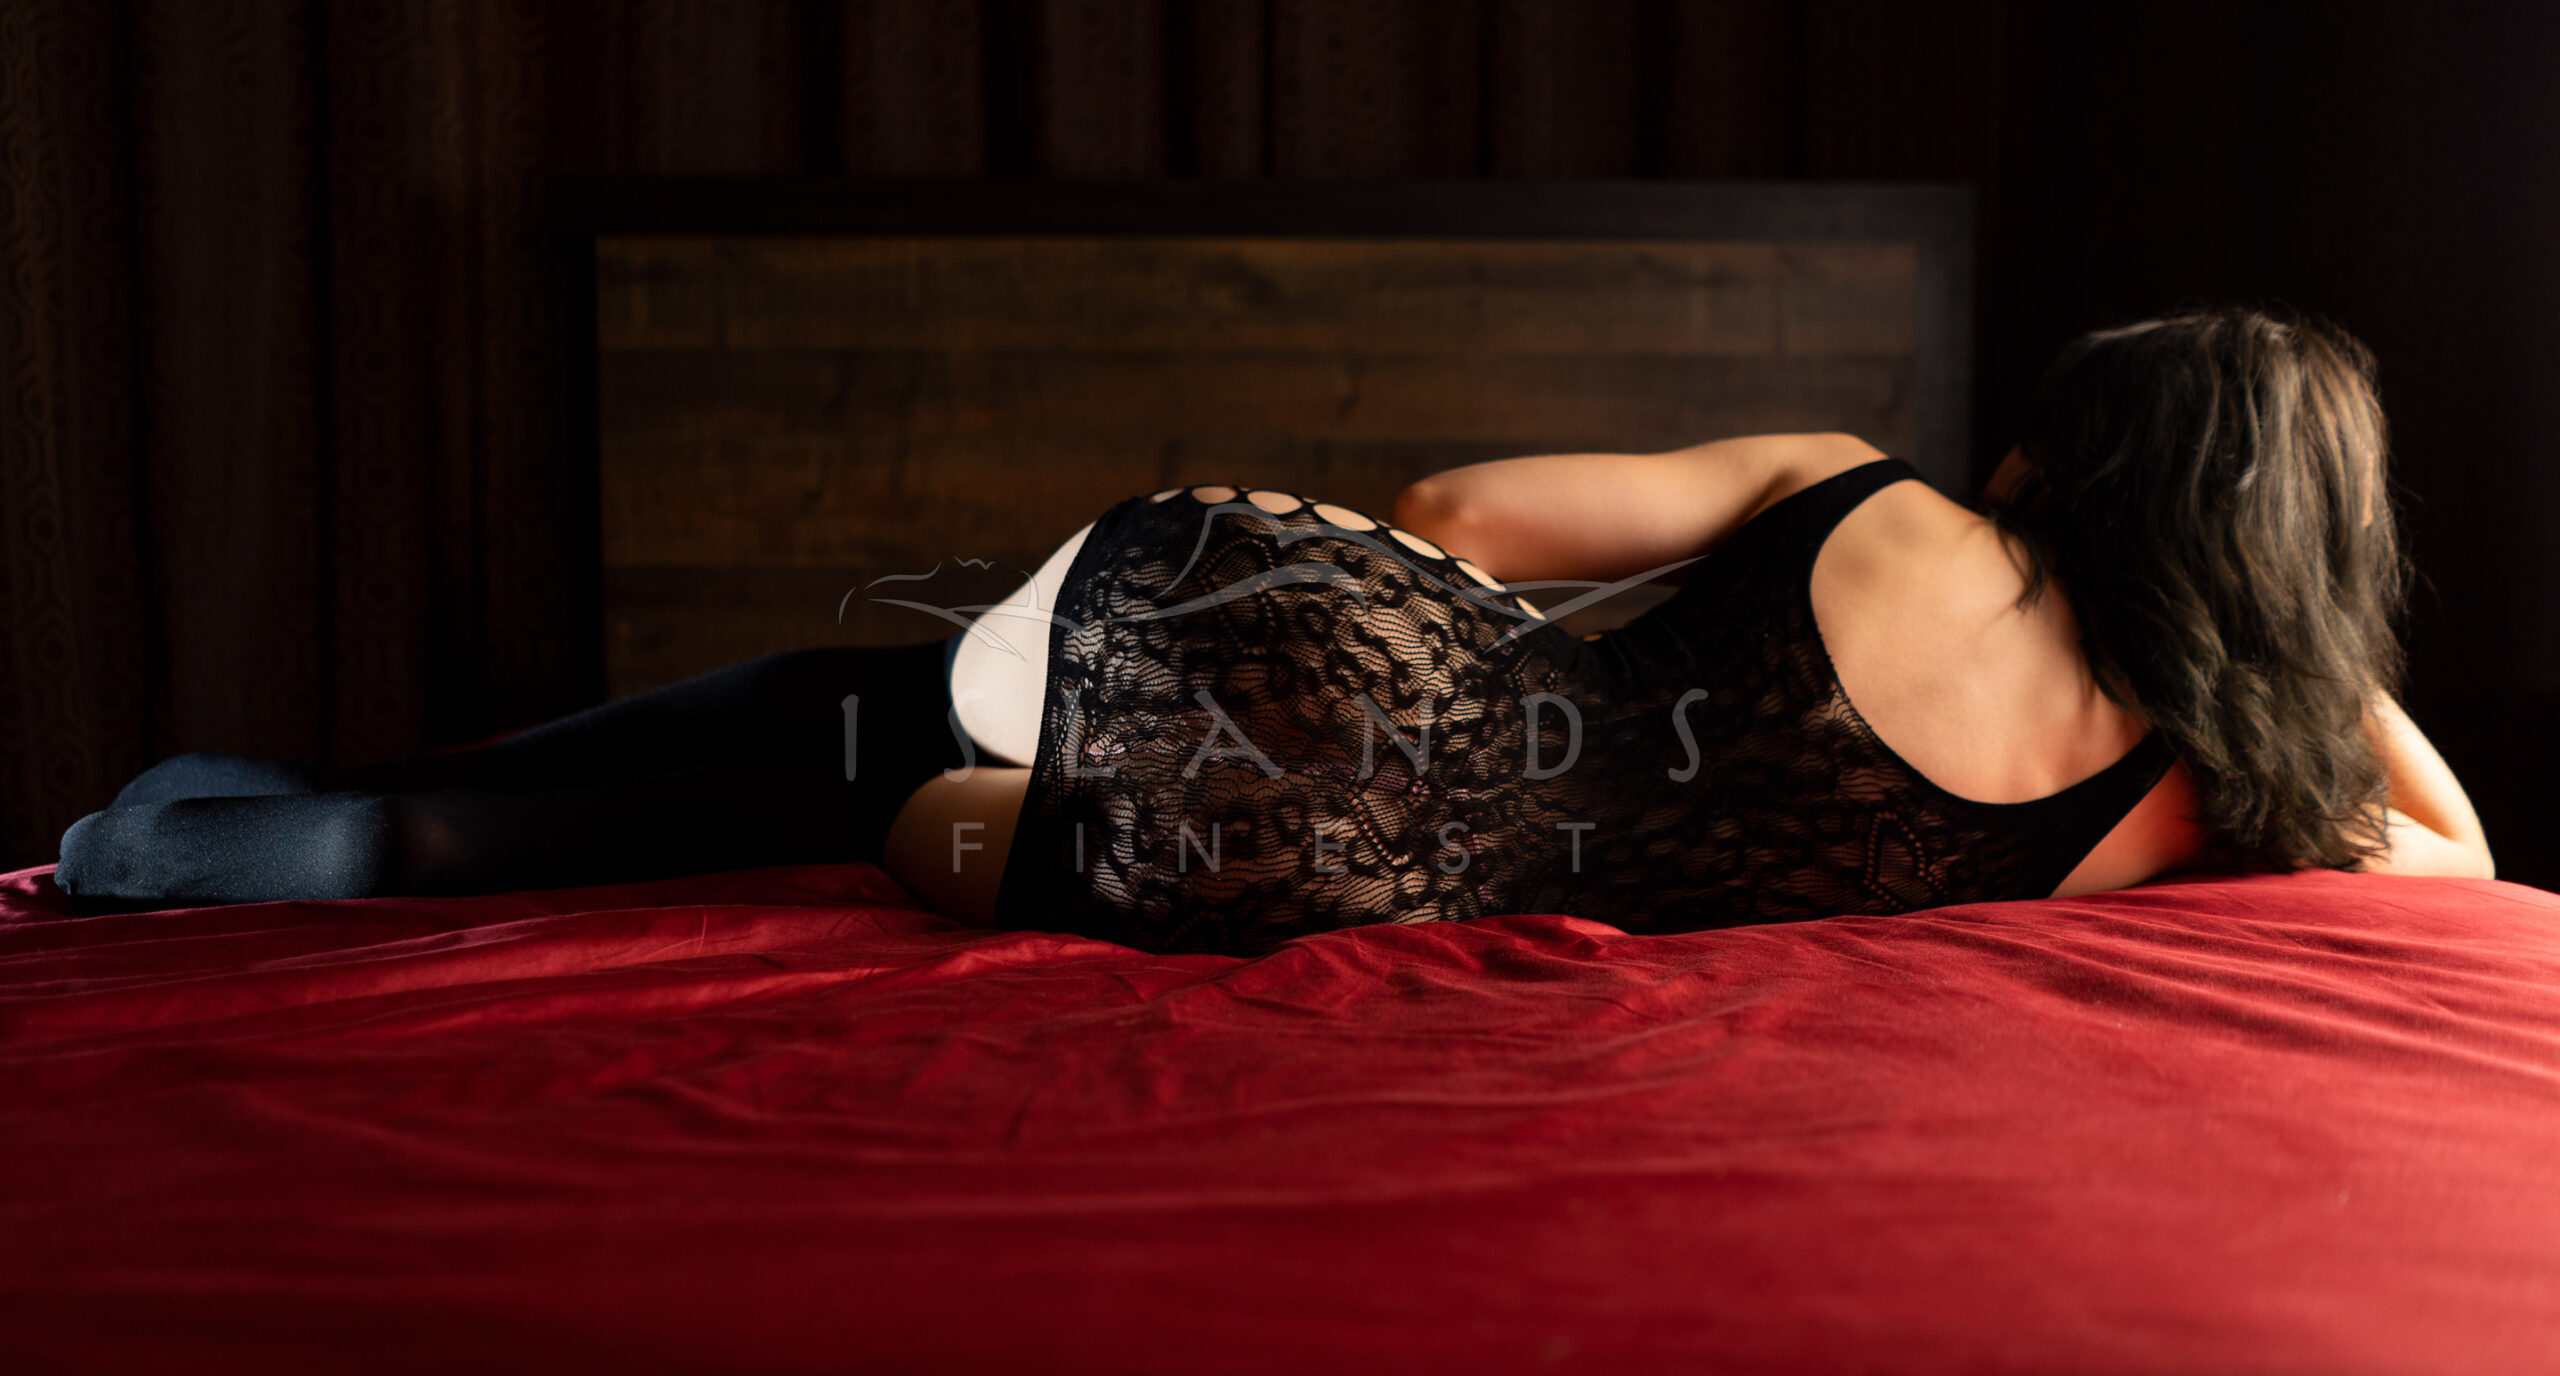 Escort Olivia lying on a bed at Island's Finest escort agency in Victoria, BC